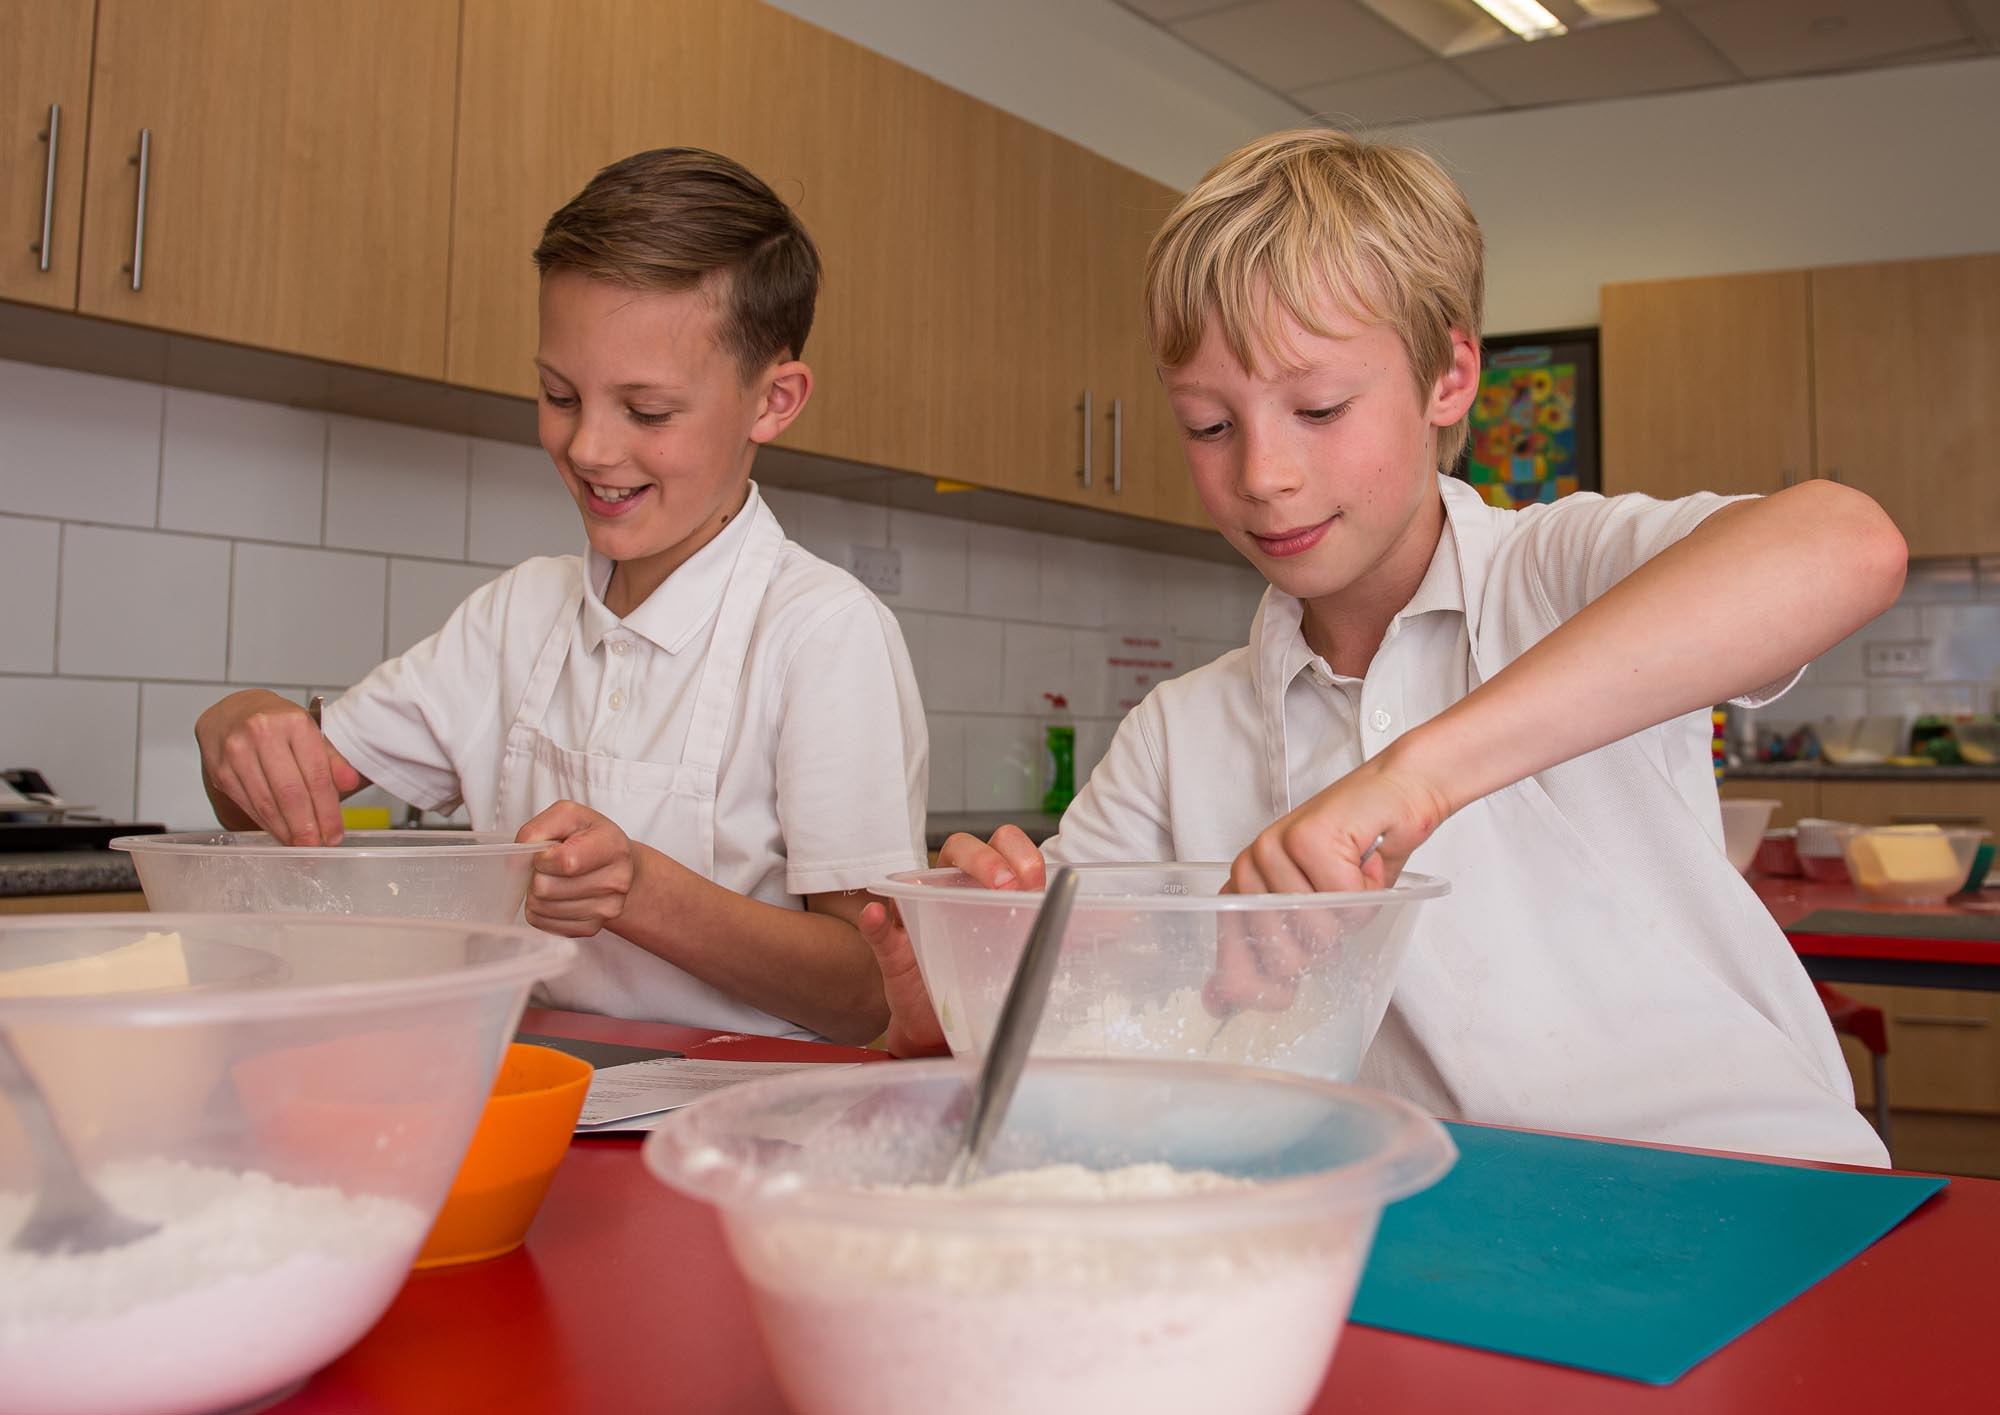 Two boys mixing flour in bowls